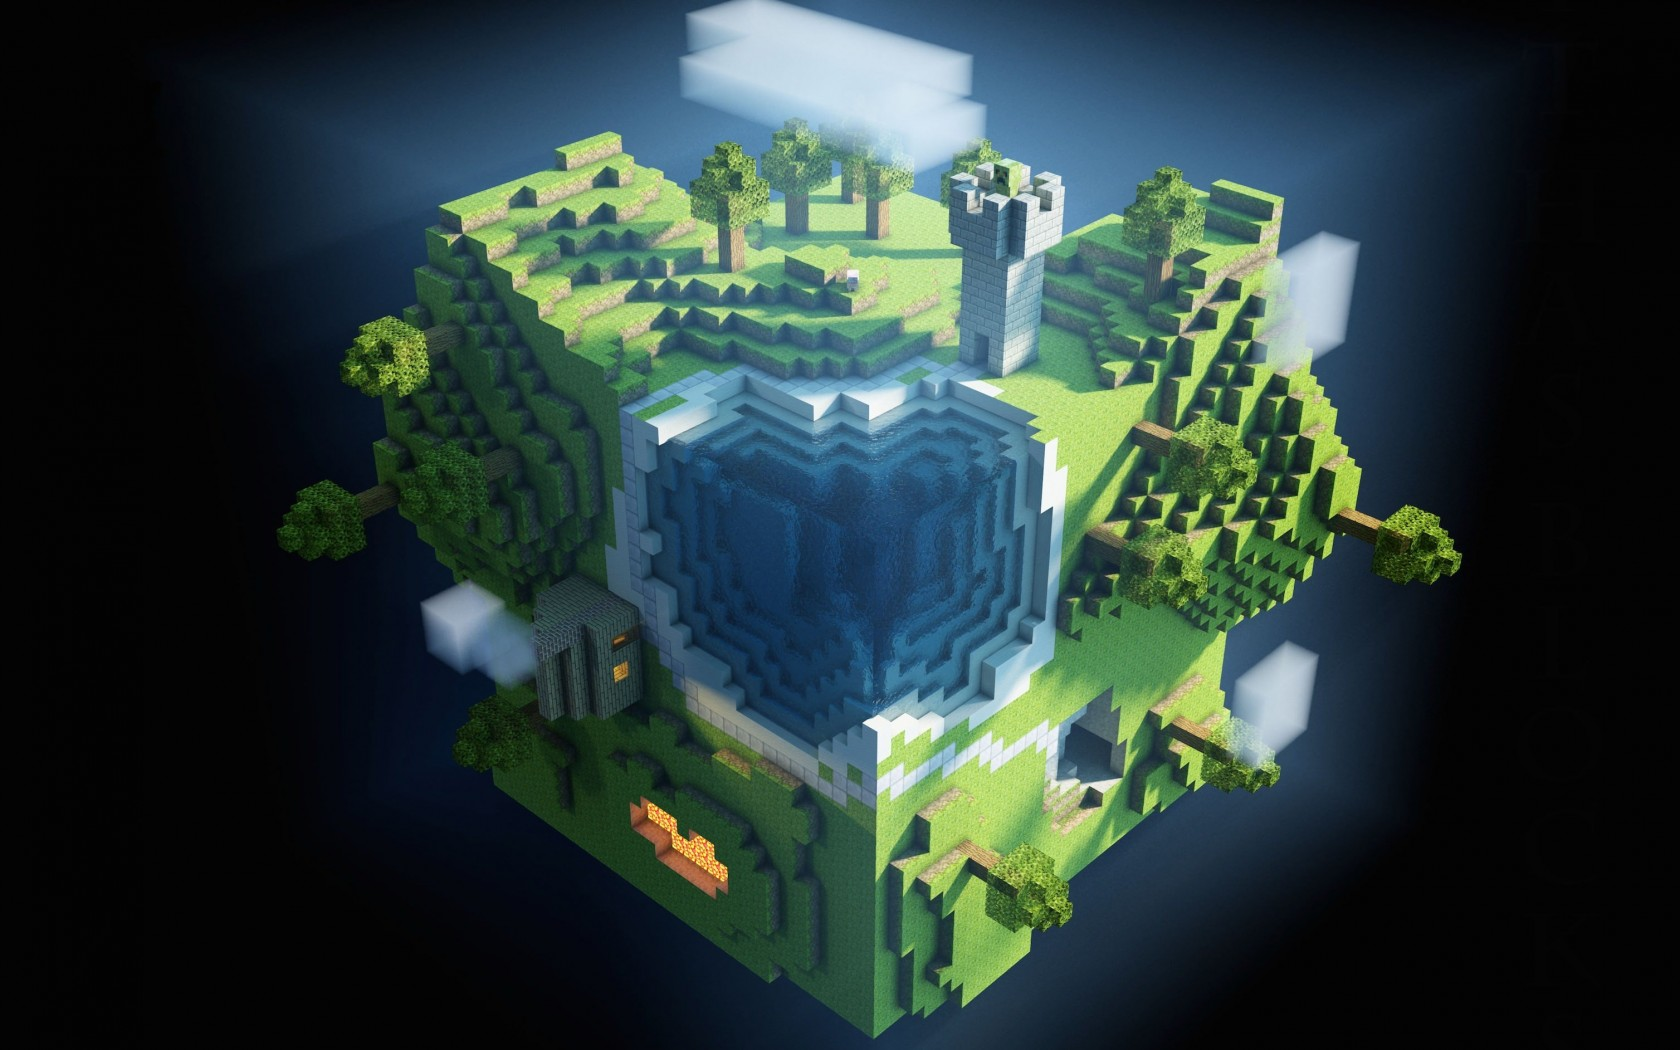 Planet Minecraft Wallpaper for Desktop 1680x1050